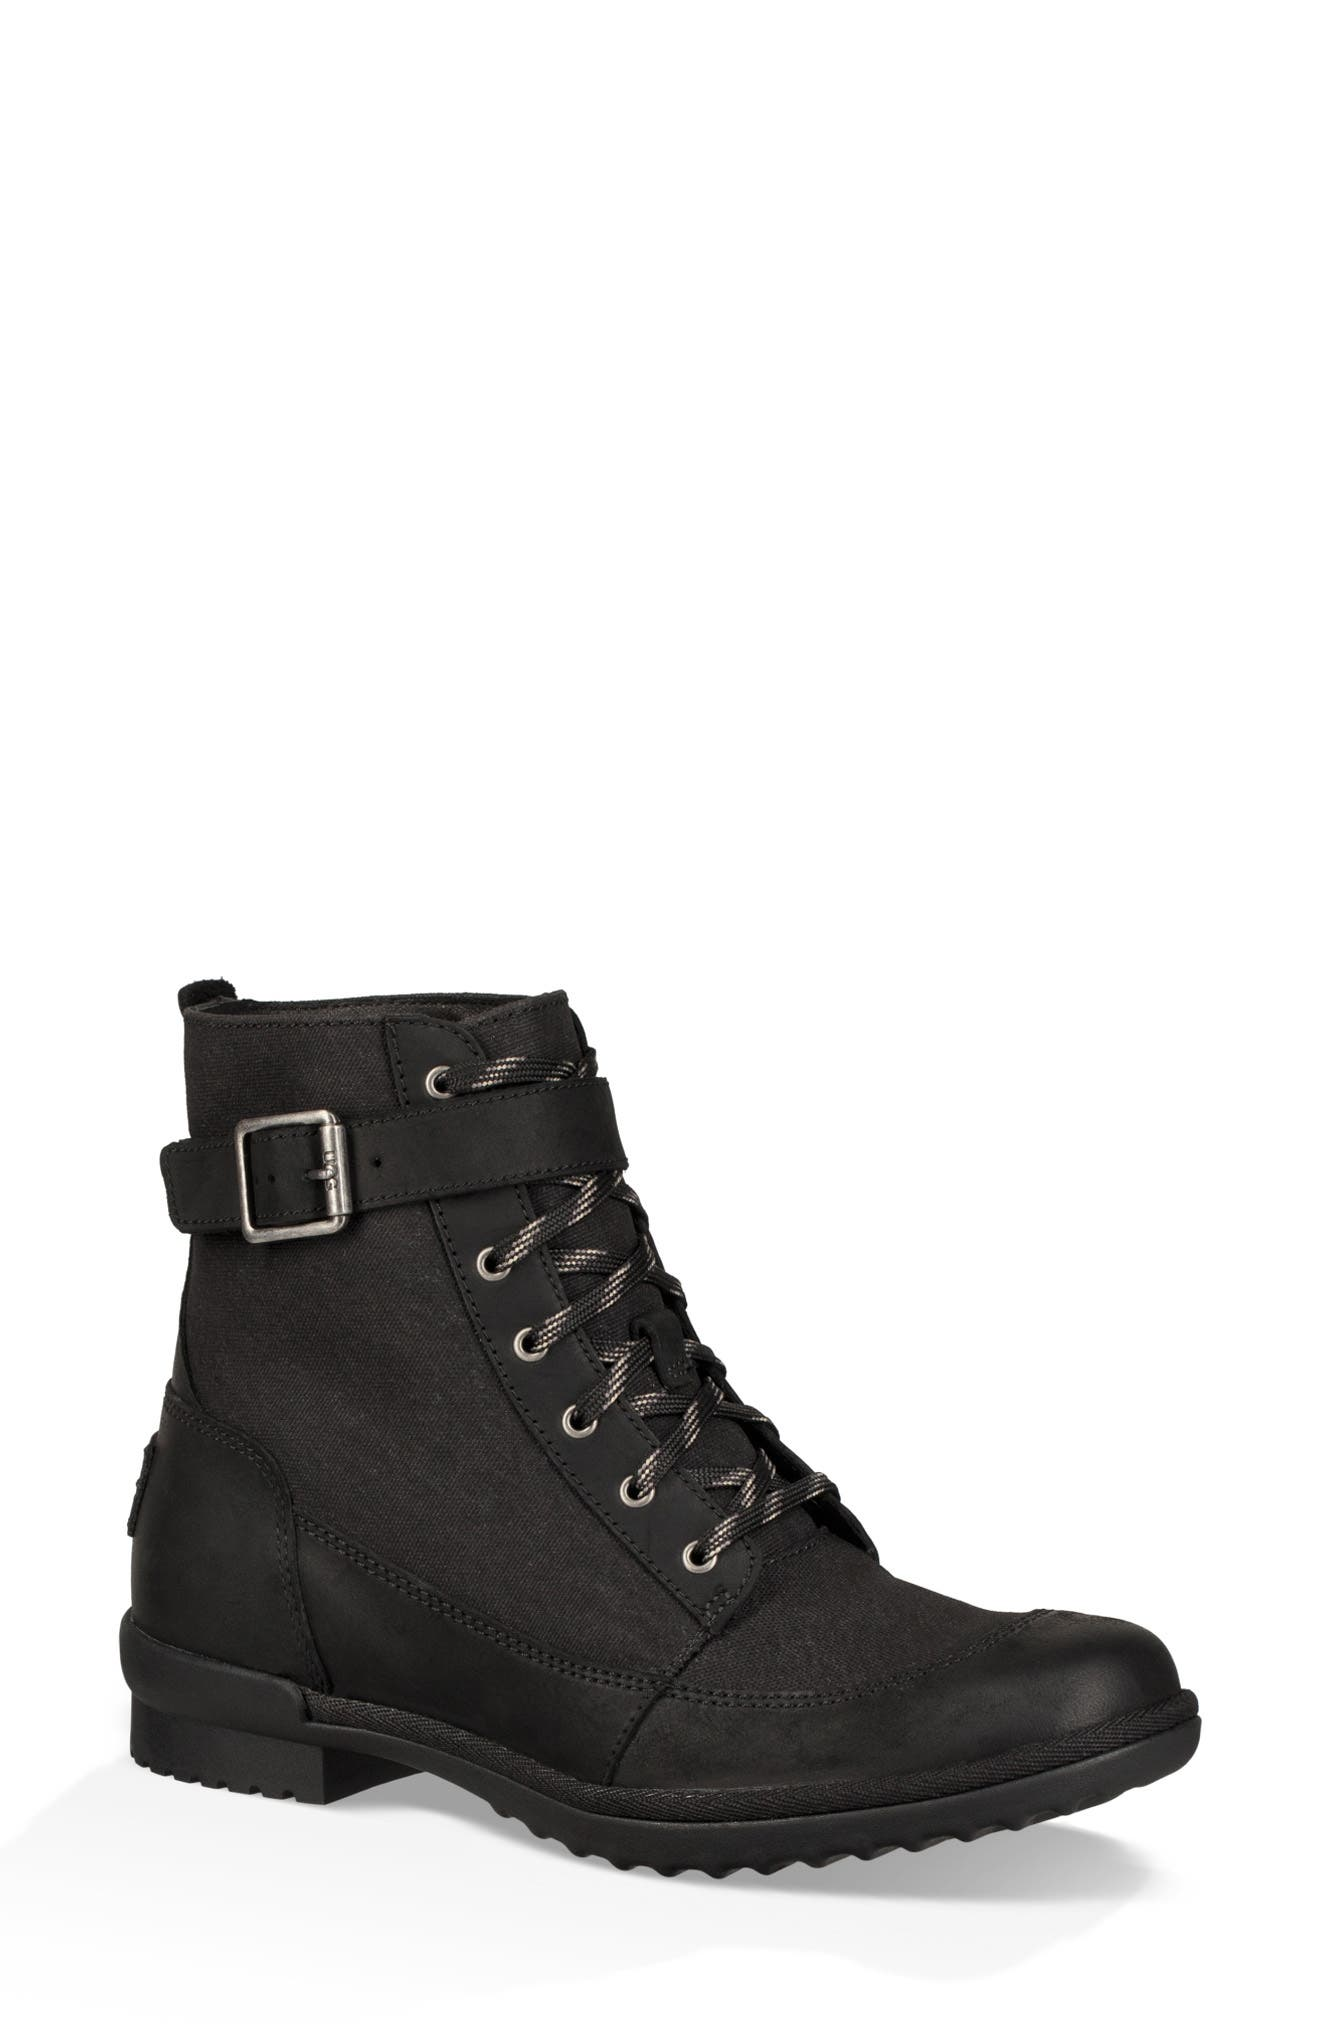 Tulane Waterproof Boot,                         Main,                         color, BLACK LEATHER